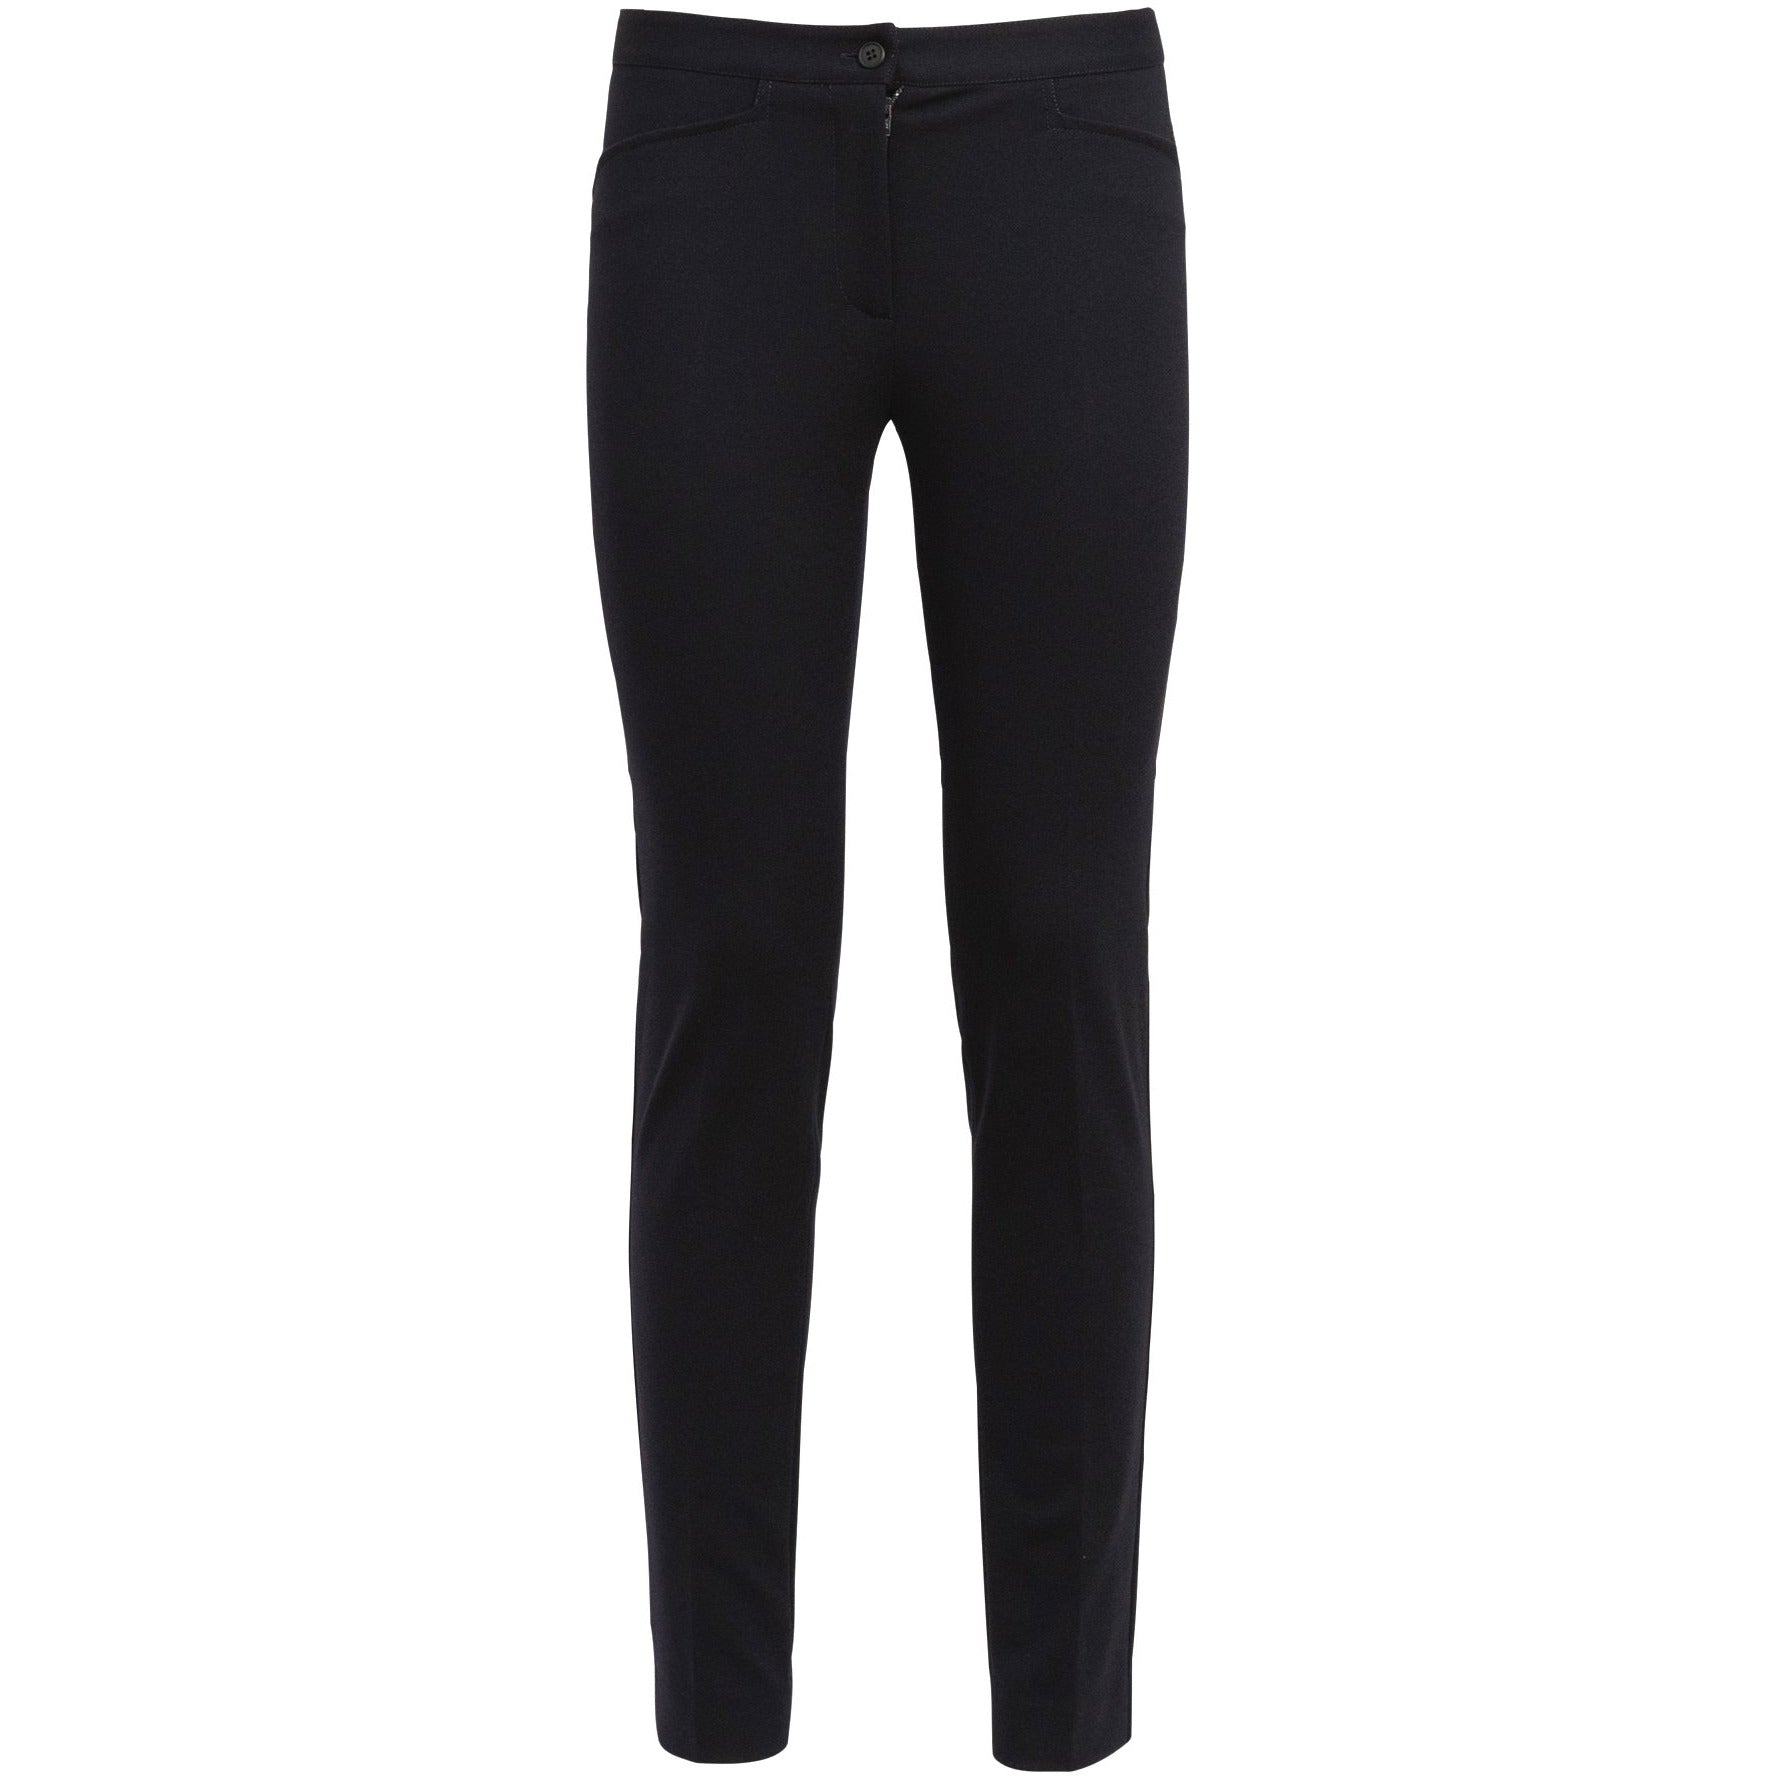 OLIMPIA Women Pants - New Spring Summer 2020 Collection GOSL8145